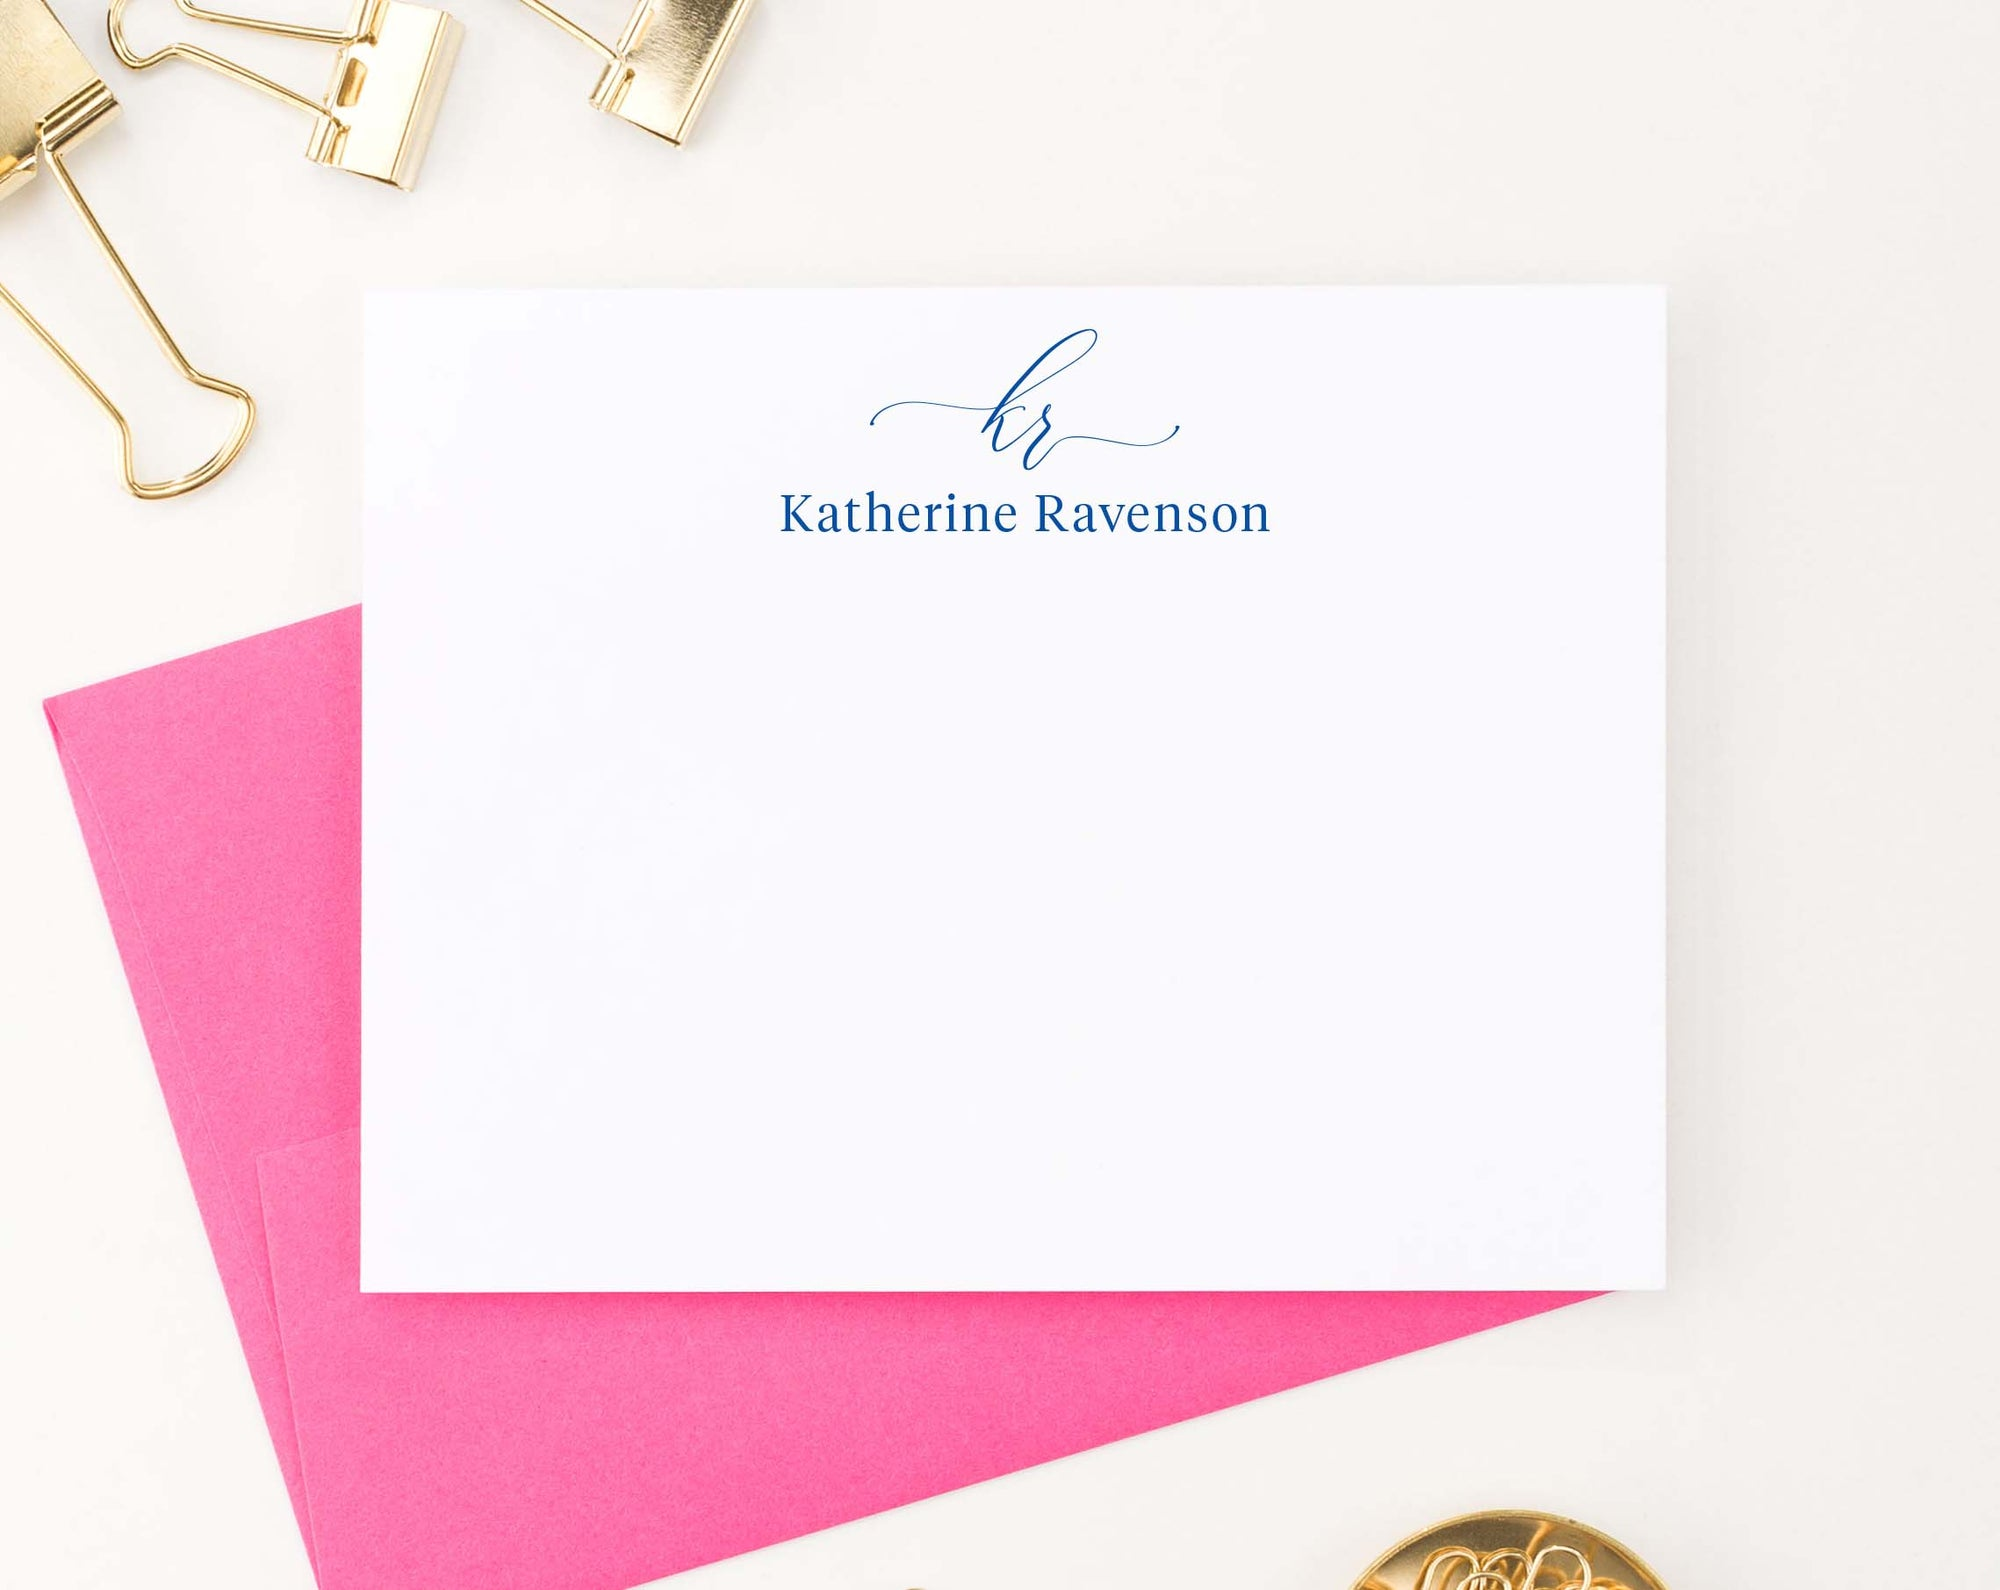 MS057 simple 2 letter and name monogrammed stationary personalized elegant script block font